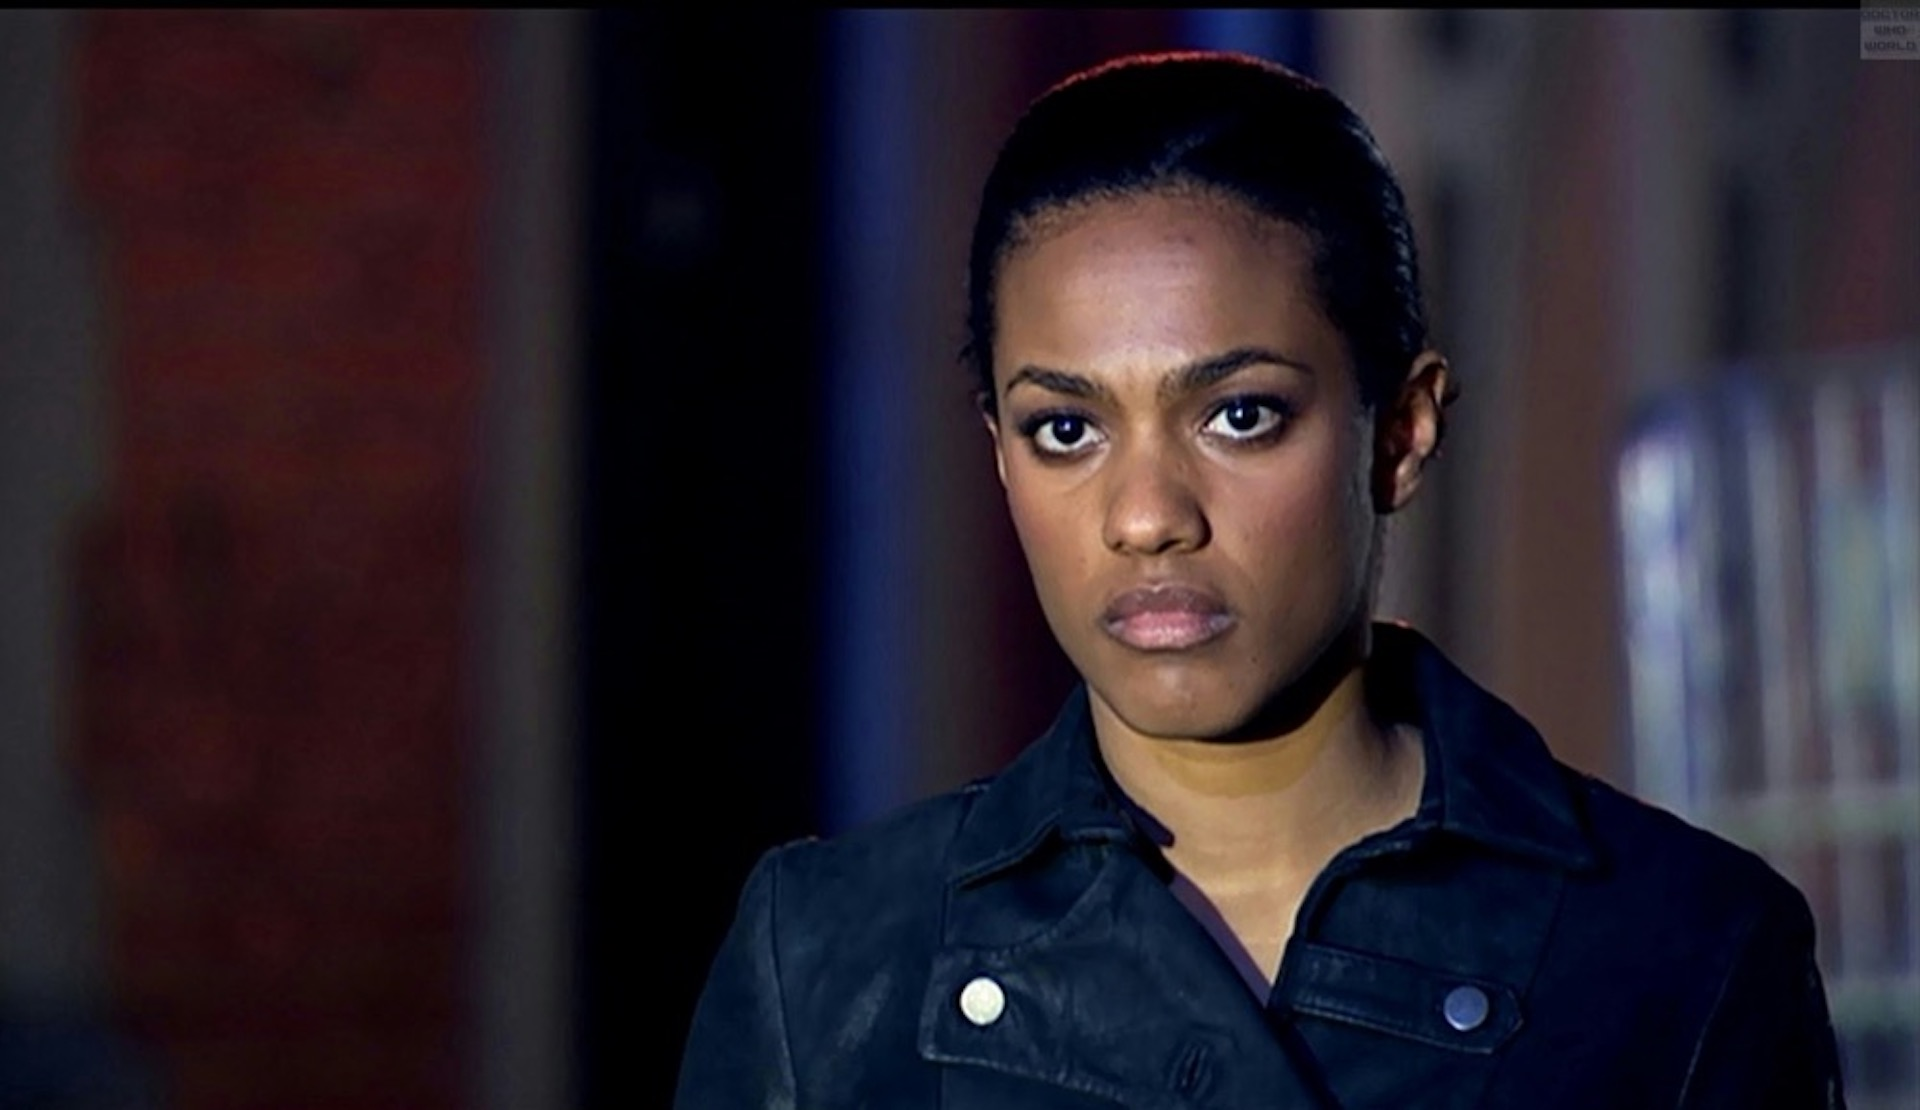 martha jones as in Last of the Timelords